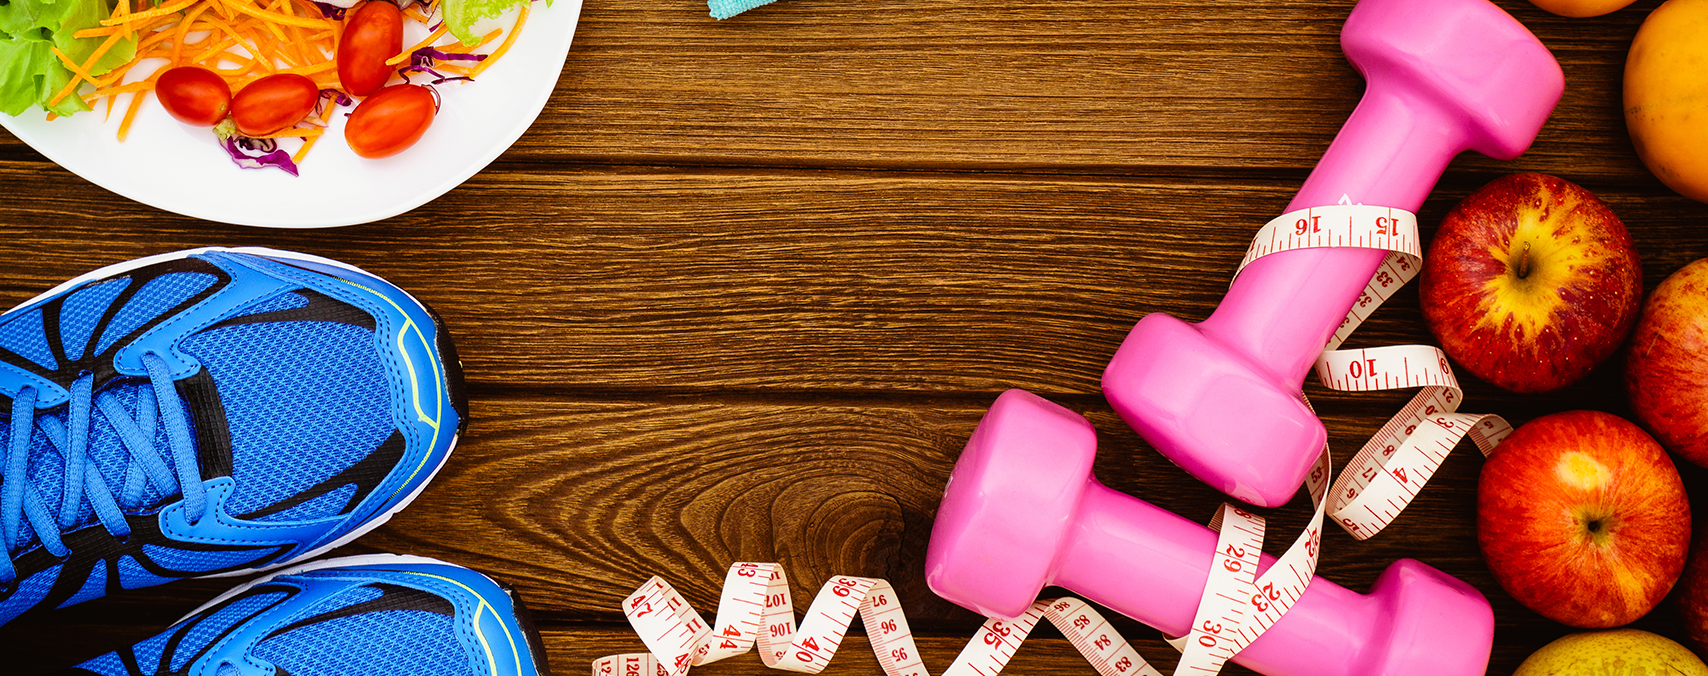 Best Ways To Lose Weight As A Stay At Home Mom